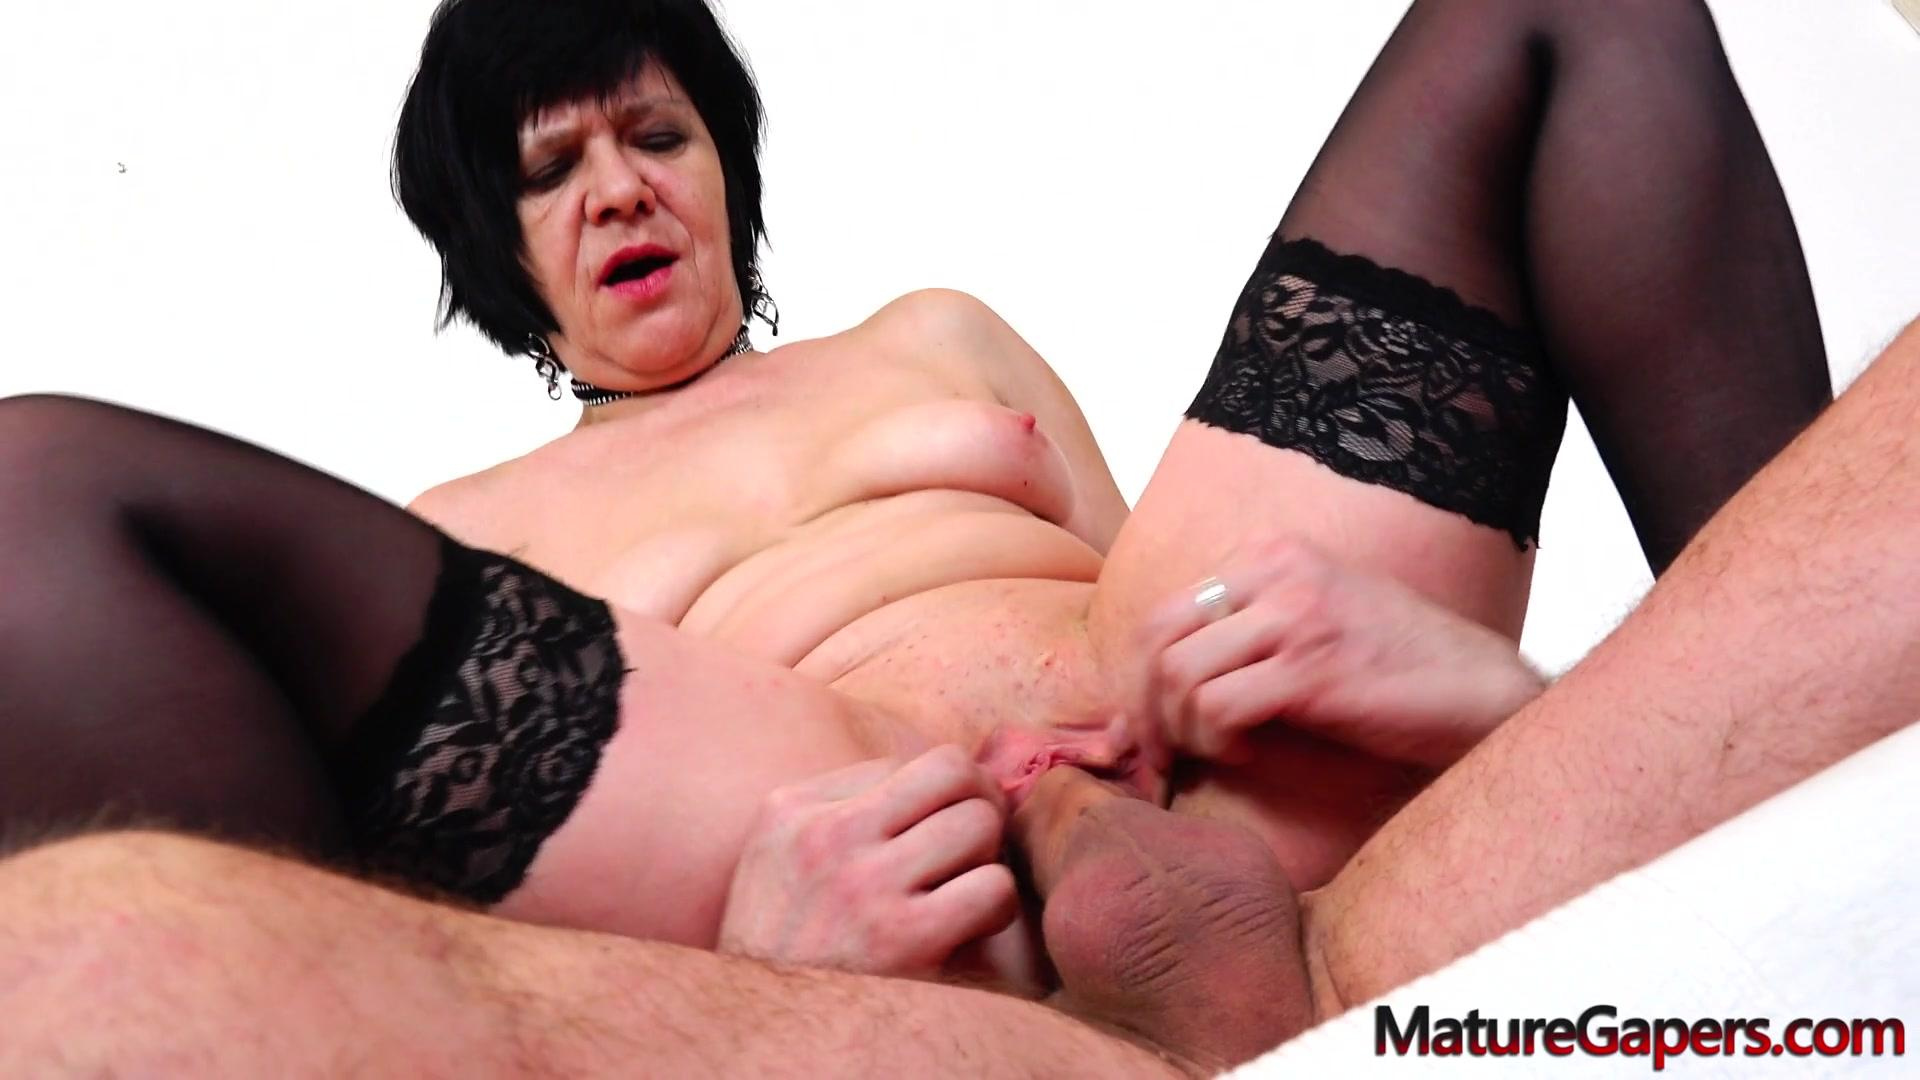 Mature Gapers – Charlie